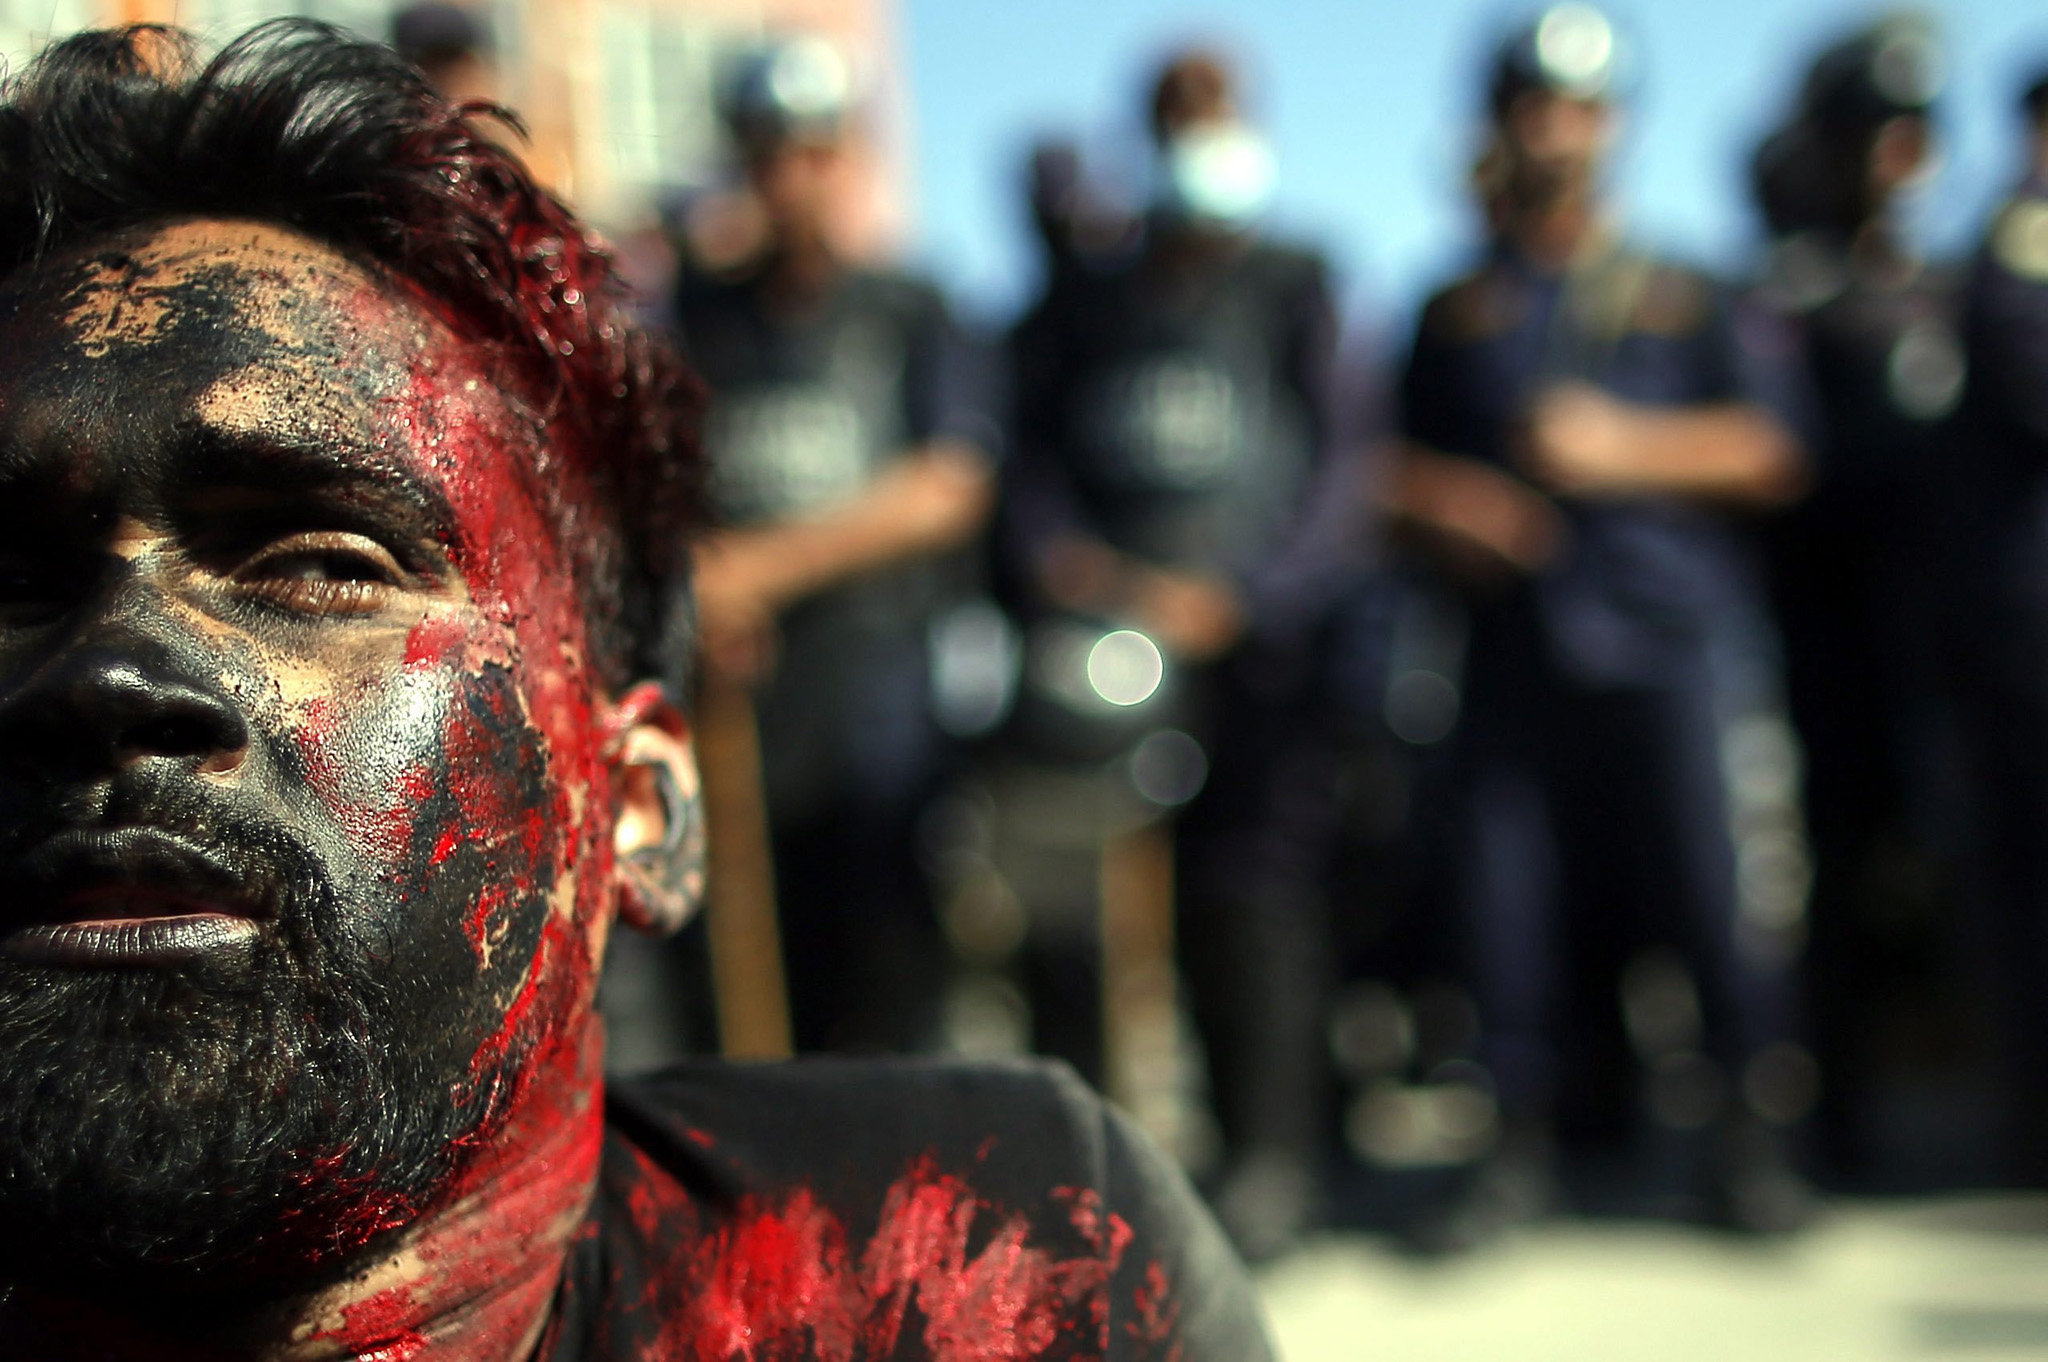 Artist belonging to Nepalese ethnic-based Madhesh political parties acts as an injured activist while protesting to mark the Nepal's first constitution day in Kathmandu, Nepal, 19 September 2016. Hundreds of members of Ethnic Madhesi political parties and related artists protest against the new constitution, which is celebrating by the government side on 19 September 2016. Madhesh based political parties say that this new constitution will not represent their demands which obstructs more political representation for ethnic minorities in the nation's parliament.  EPA/NARENDRA SHRESTHA